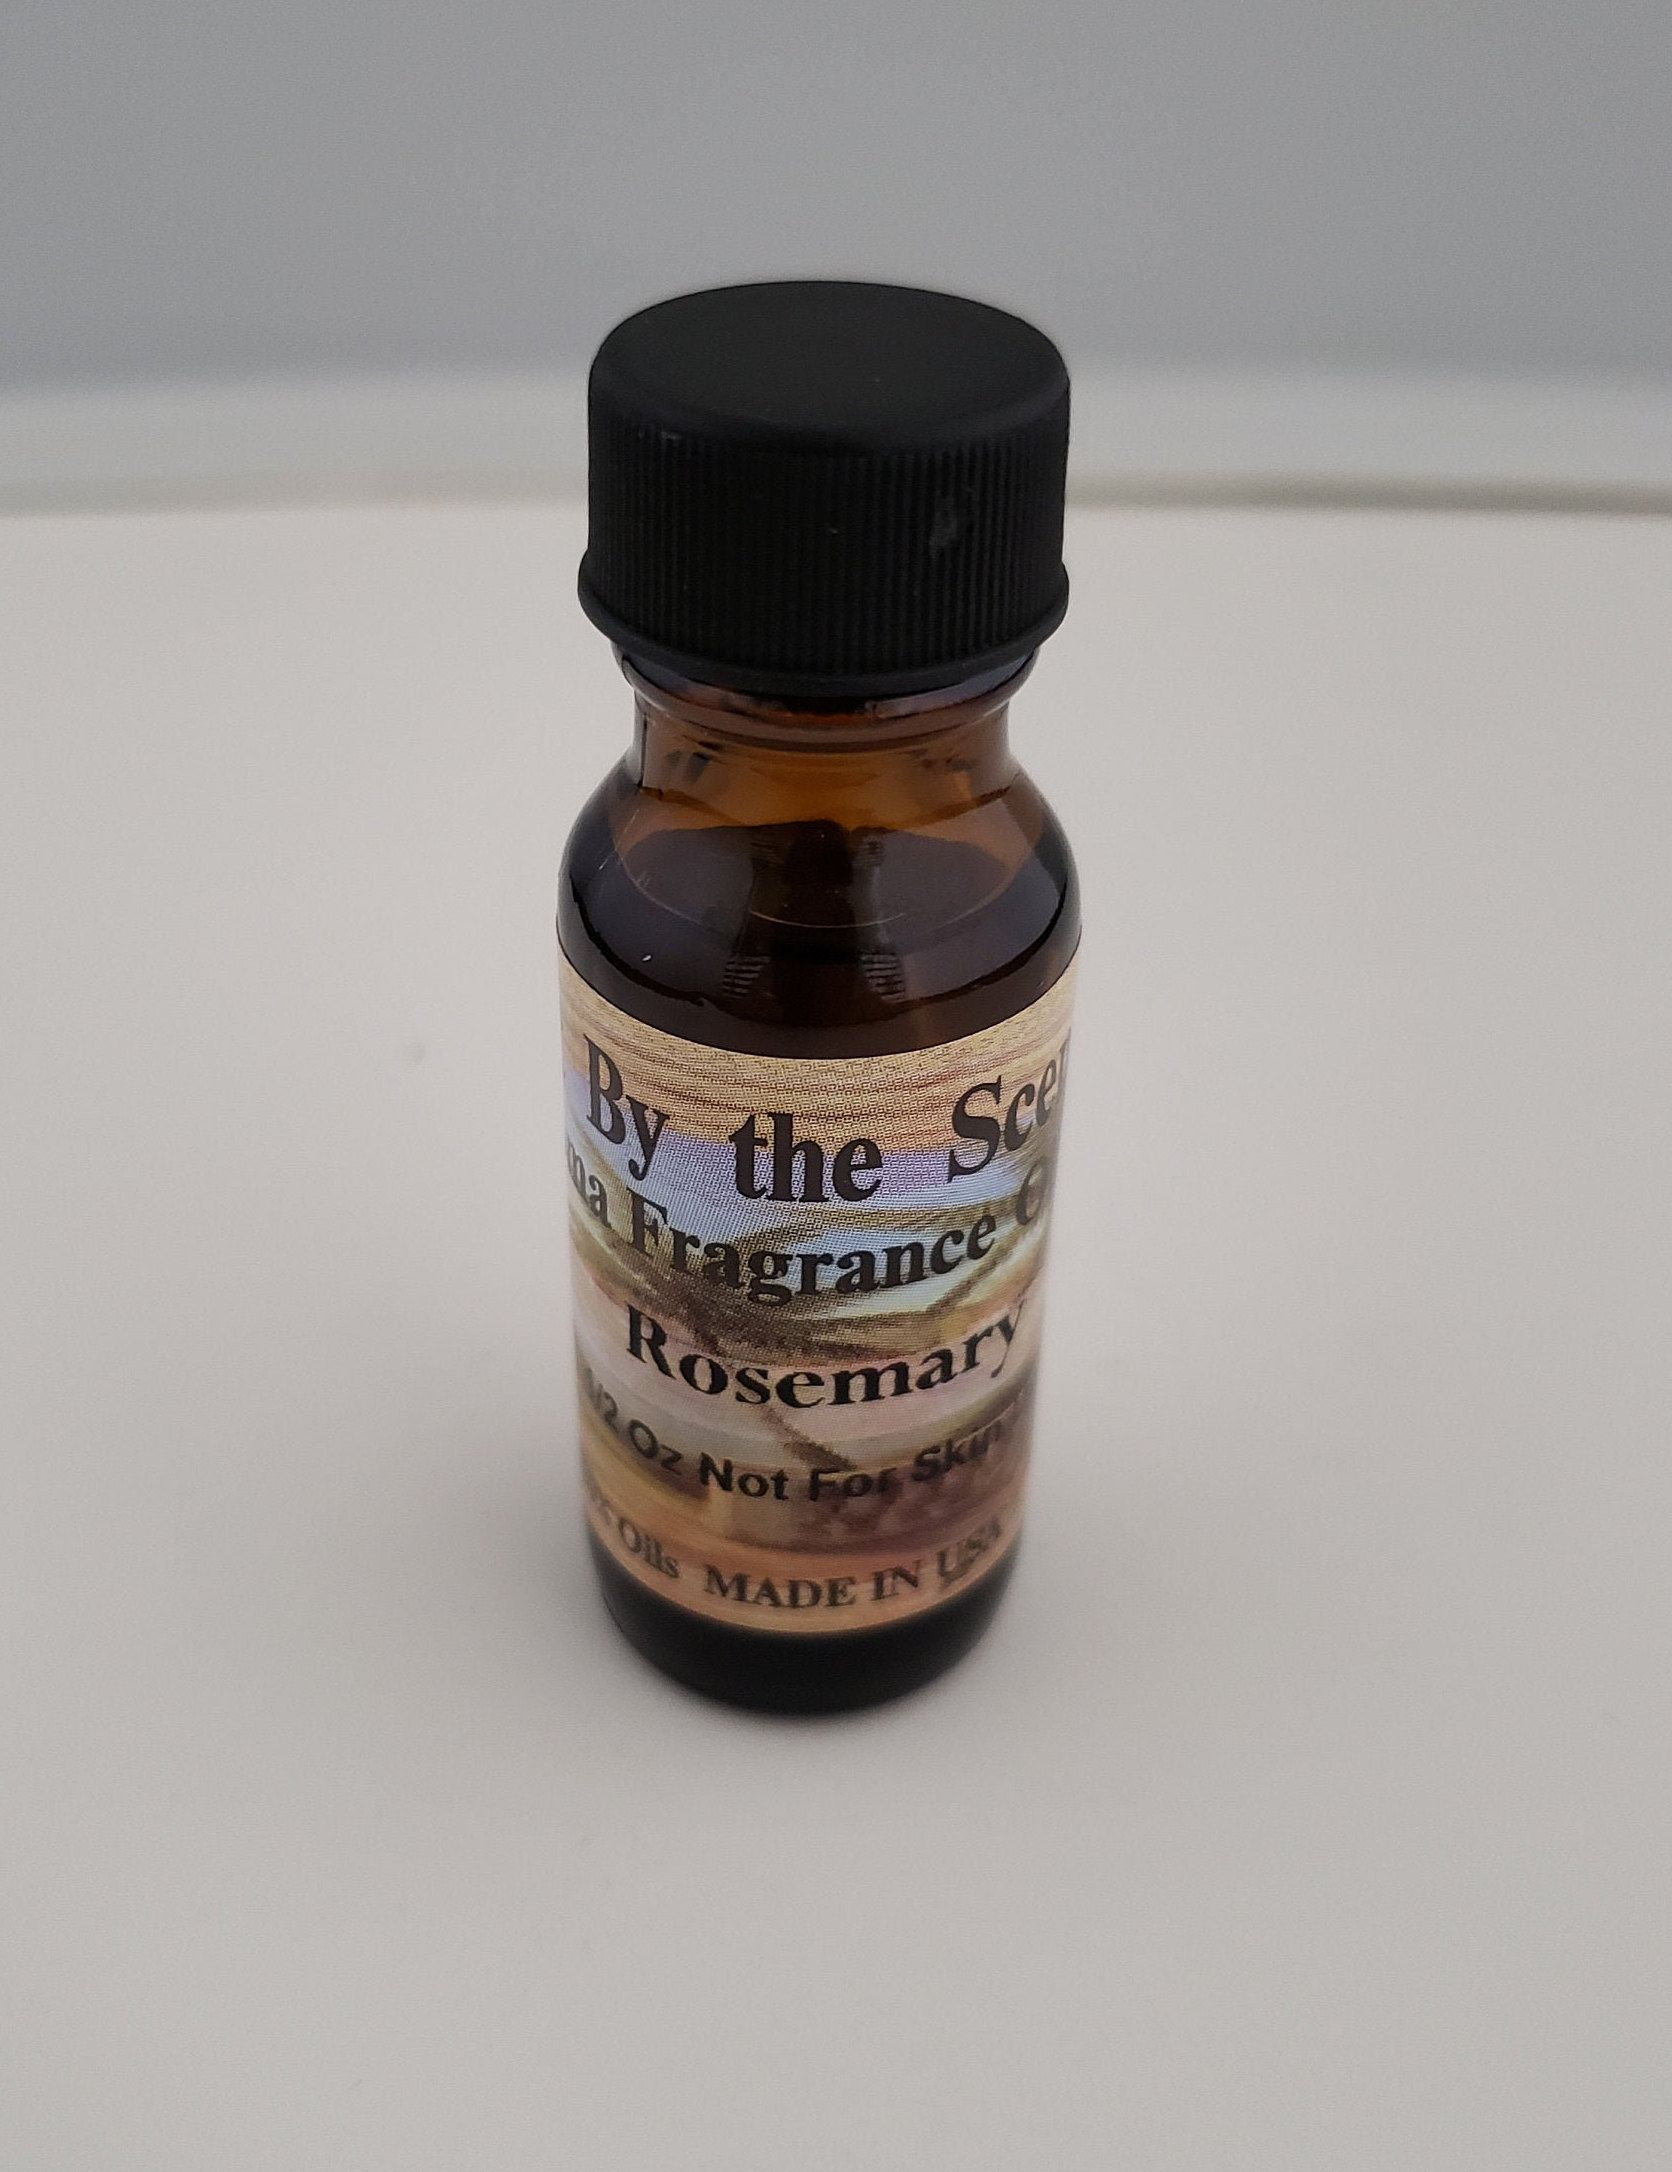 Rosemary Aroma Fragrance Oil Just By The Scents 1 2 Ounce Bottle 100 Oil Made In Usa Fragrance Oil Fragrance Scents